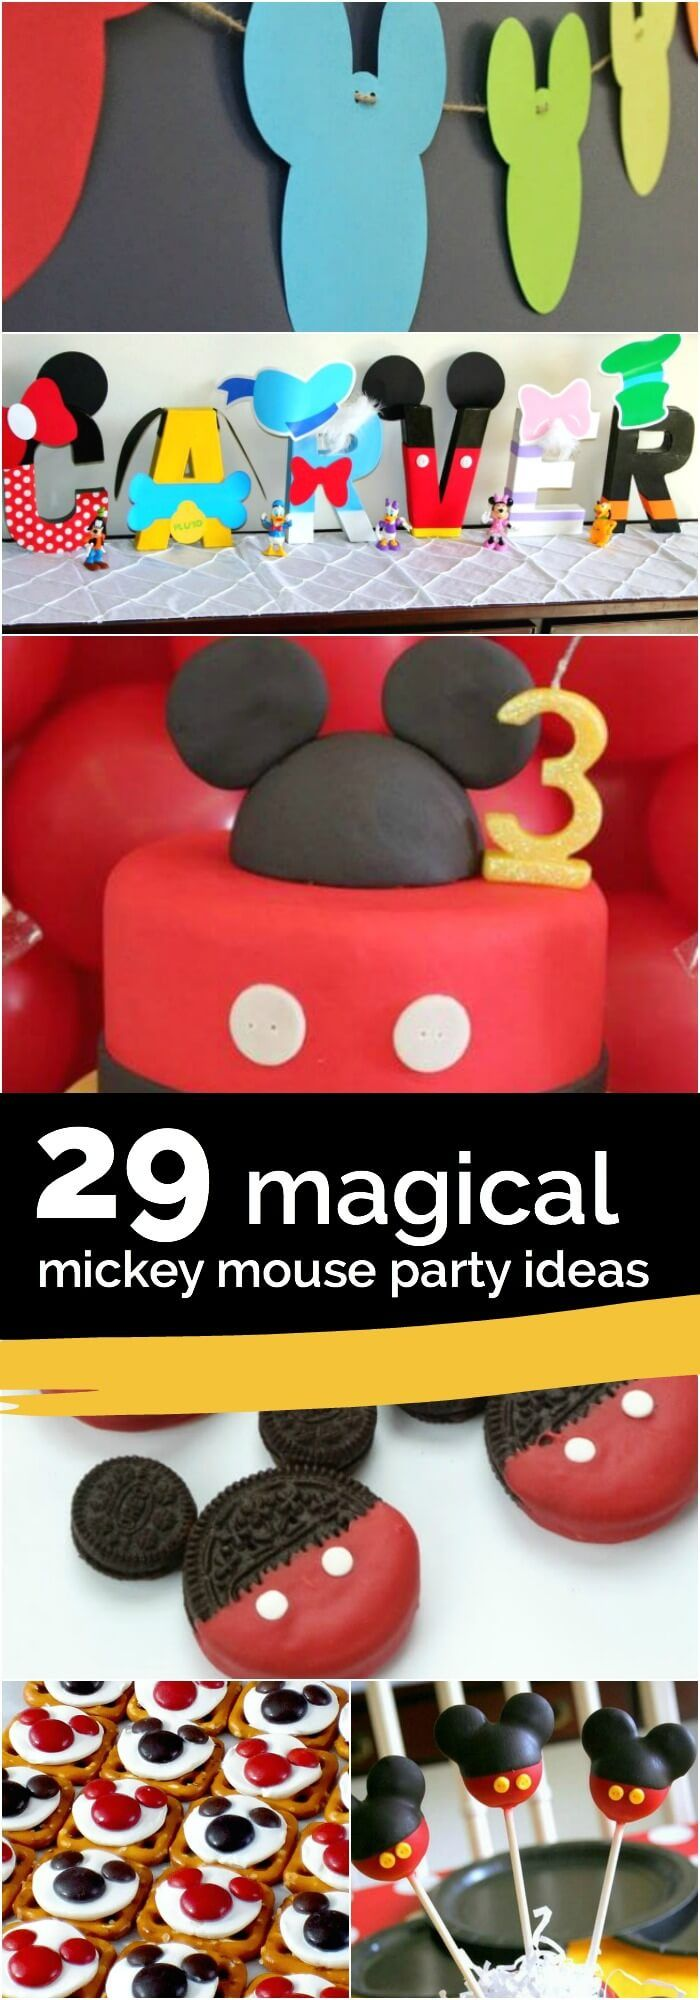 29 Magical Mickey Mouse Party Ideas                                                                                                                                                                                 More